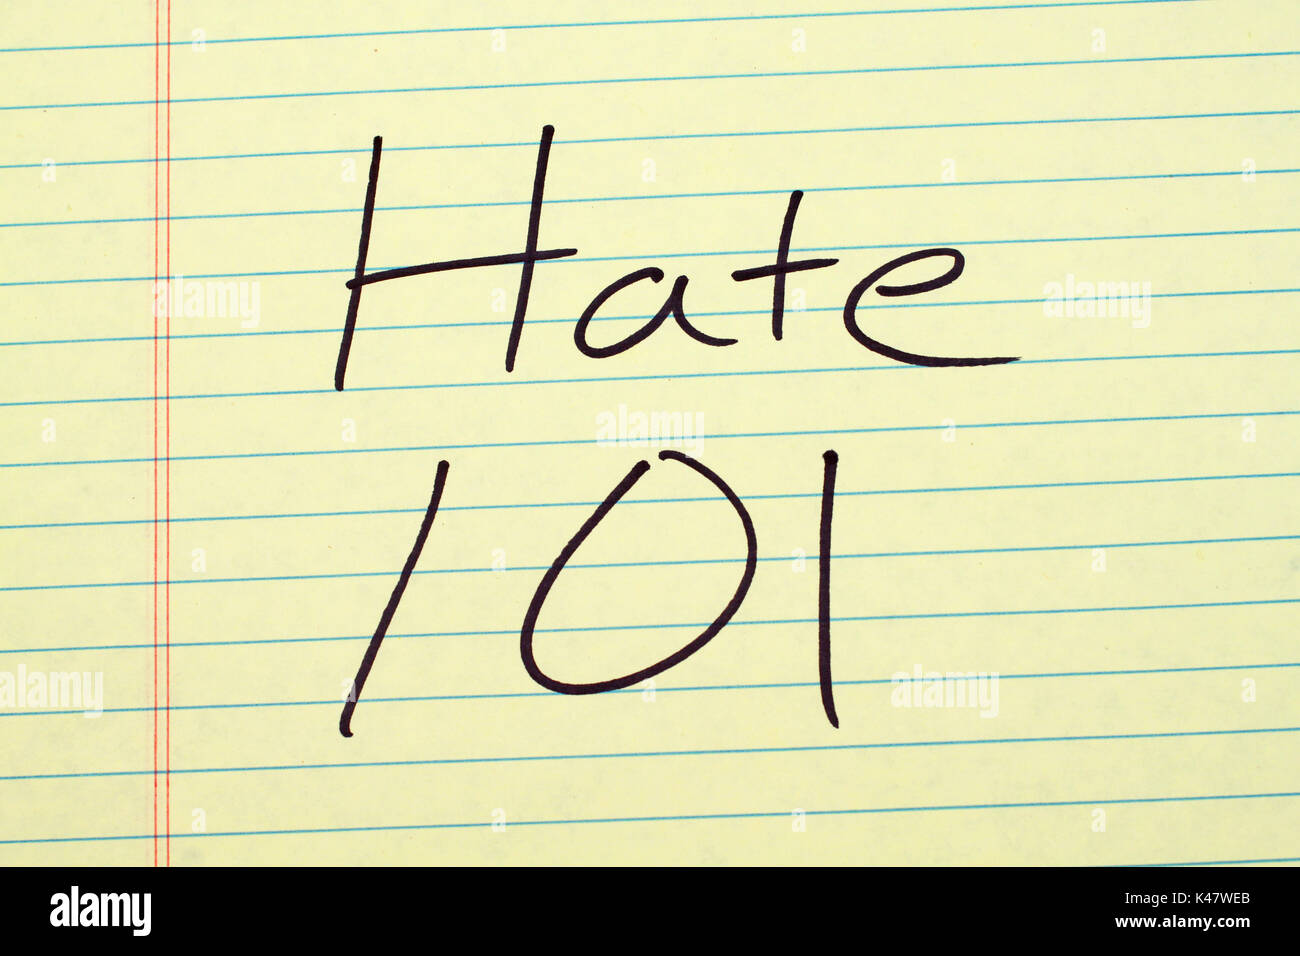 The words 'Hate 101' on a yellow legal pad - Stock Image